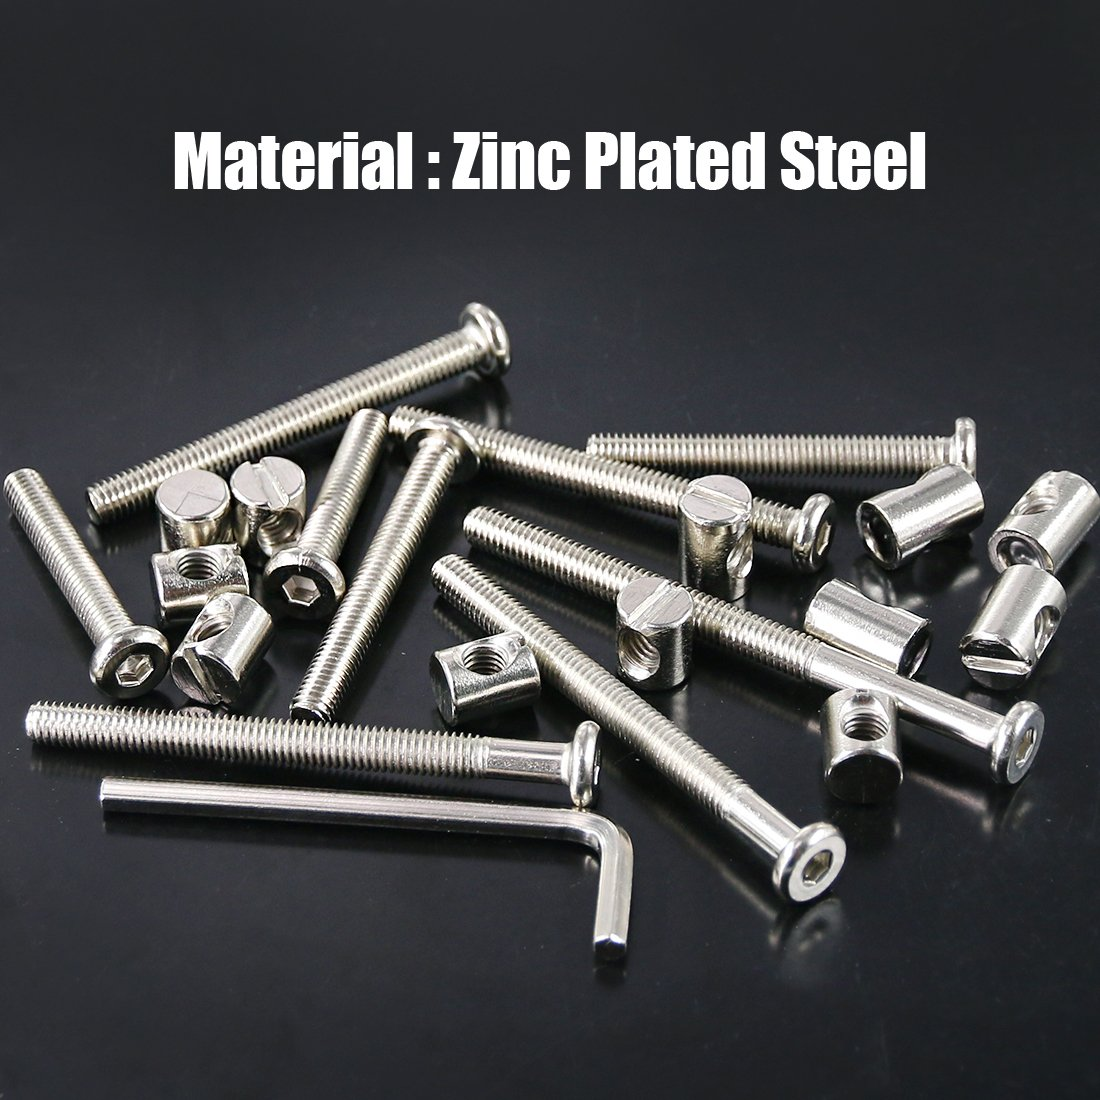 Cots Swpeet 100Pcs Crib Hardware Screws Nicked Plated M6 x35//45//55//65//75mm Hex Socket Head Cap Crib Baby Bed Bolt and Barrel Nuts with 1 x Allen Wrench Perfect for Furniture Crib Screws